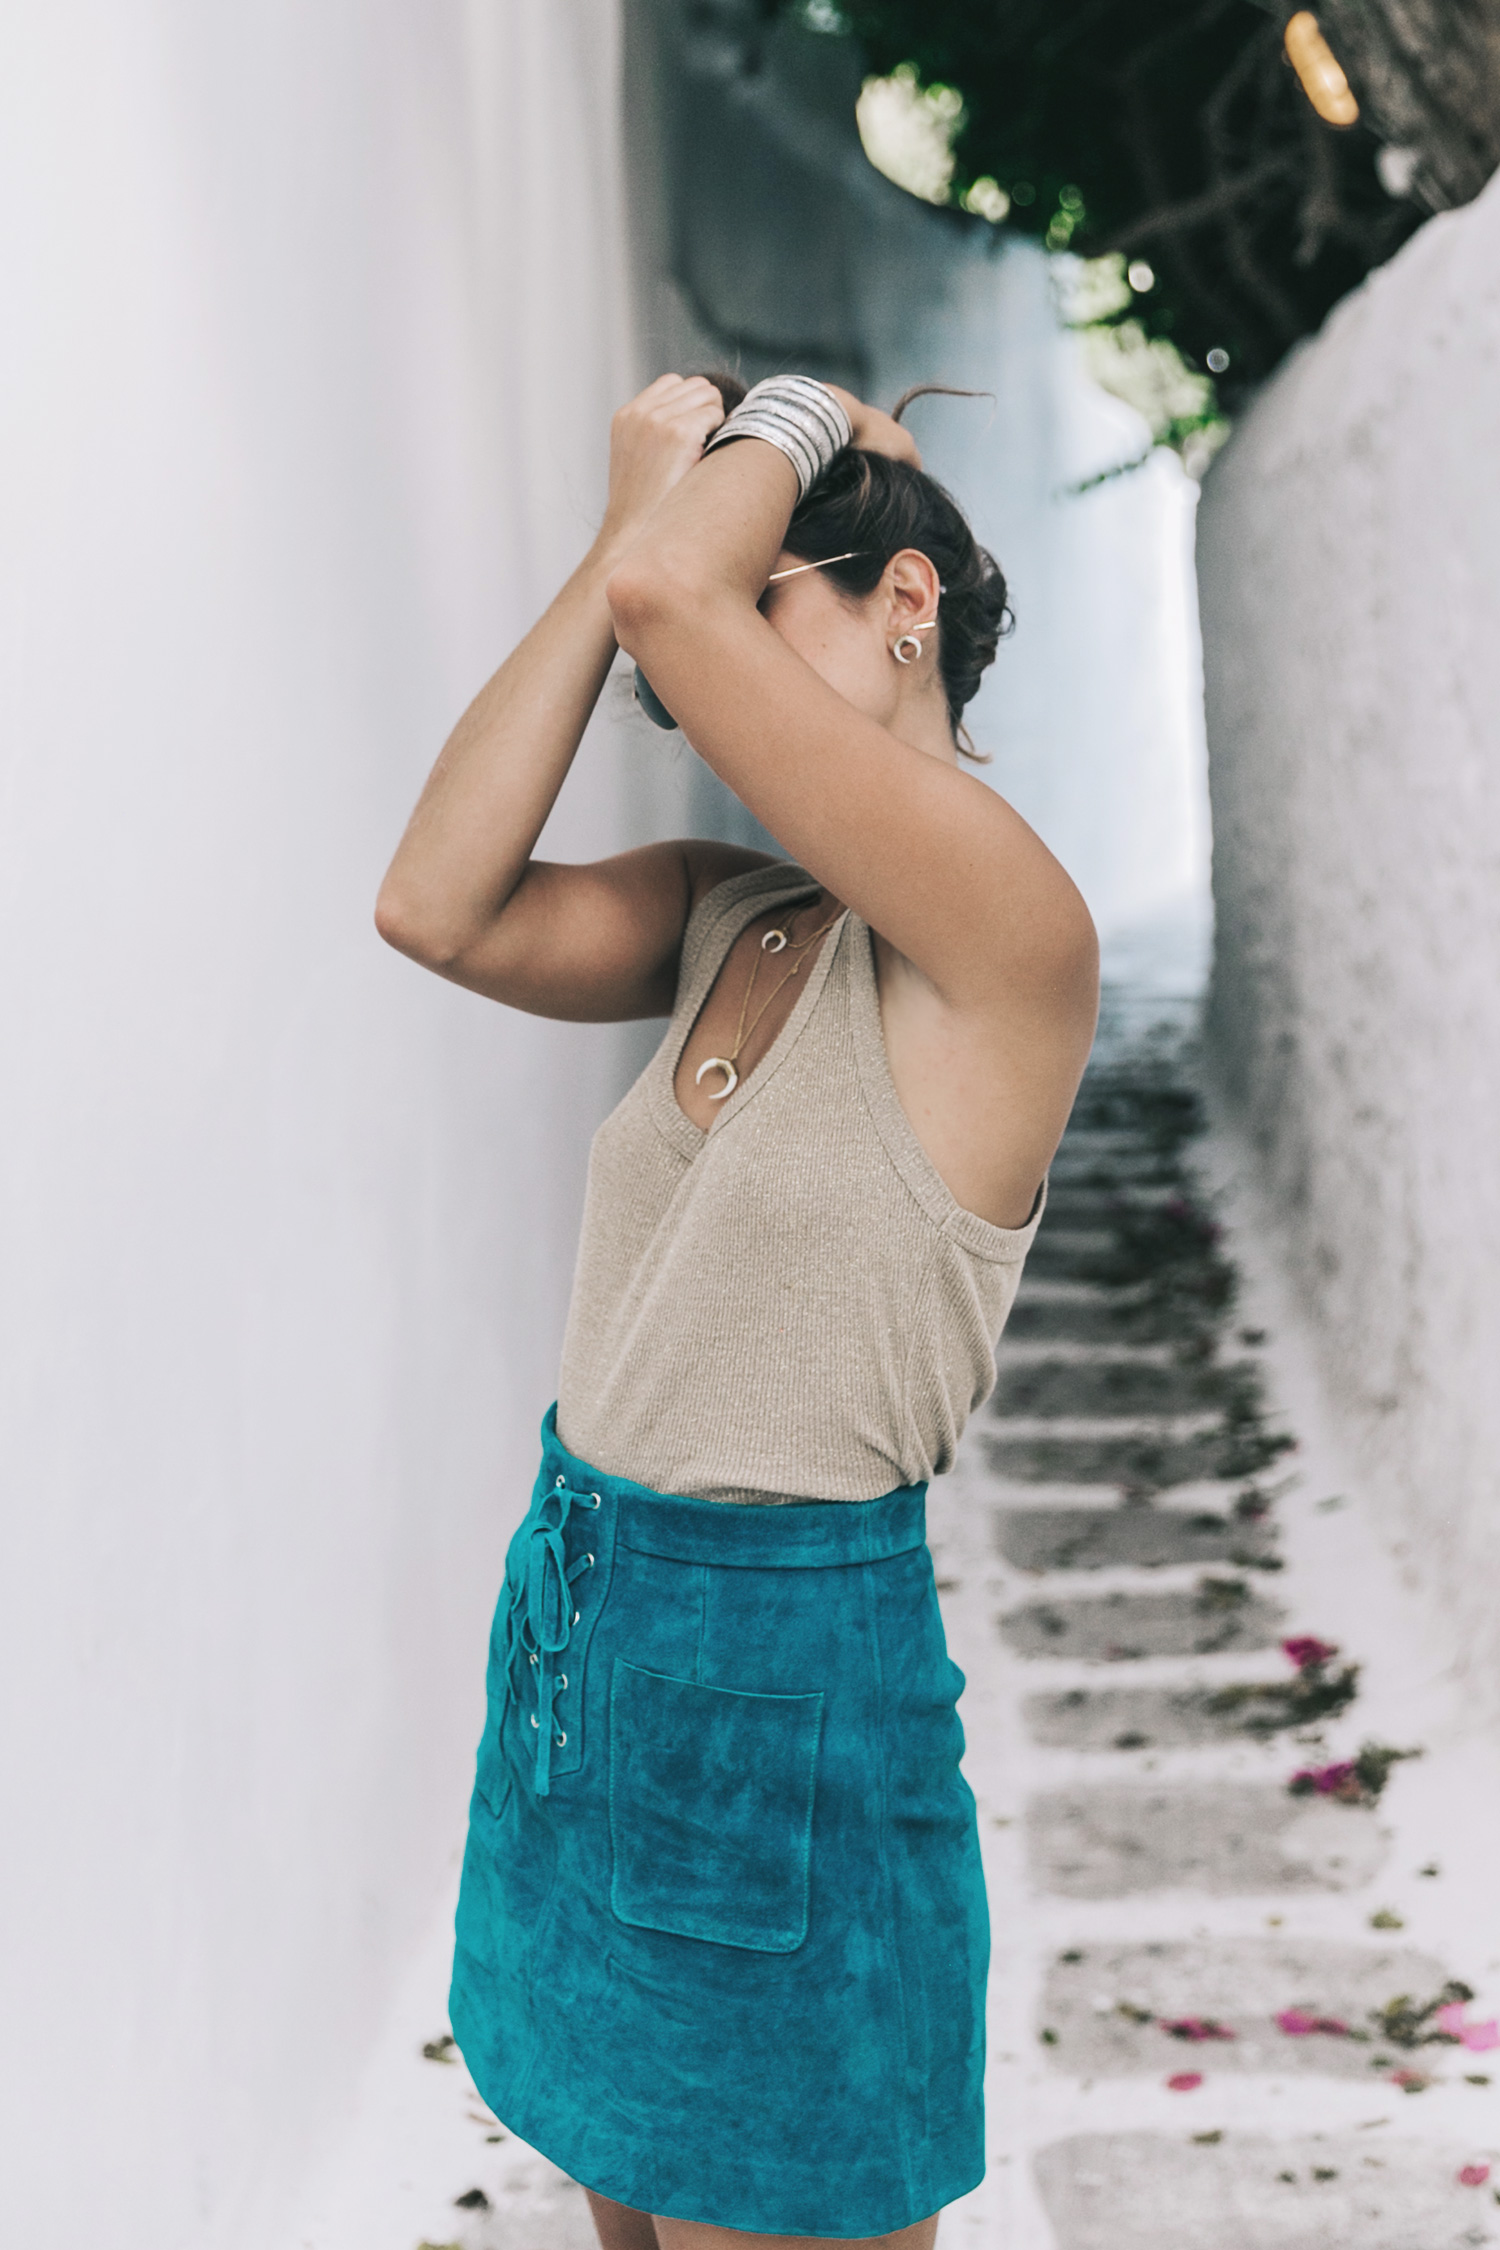 Gold_Top-Metallic_Trend-Suede_Skirt-Turquoise_Skirt-Soludos_Espadrilles-Soludos_Escapes-Mykonos-Greece-Collage_Vintage-Street_Style-64